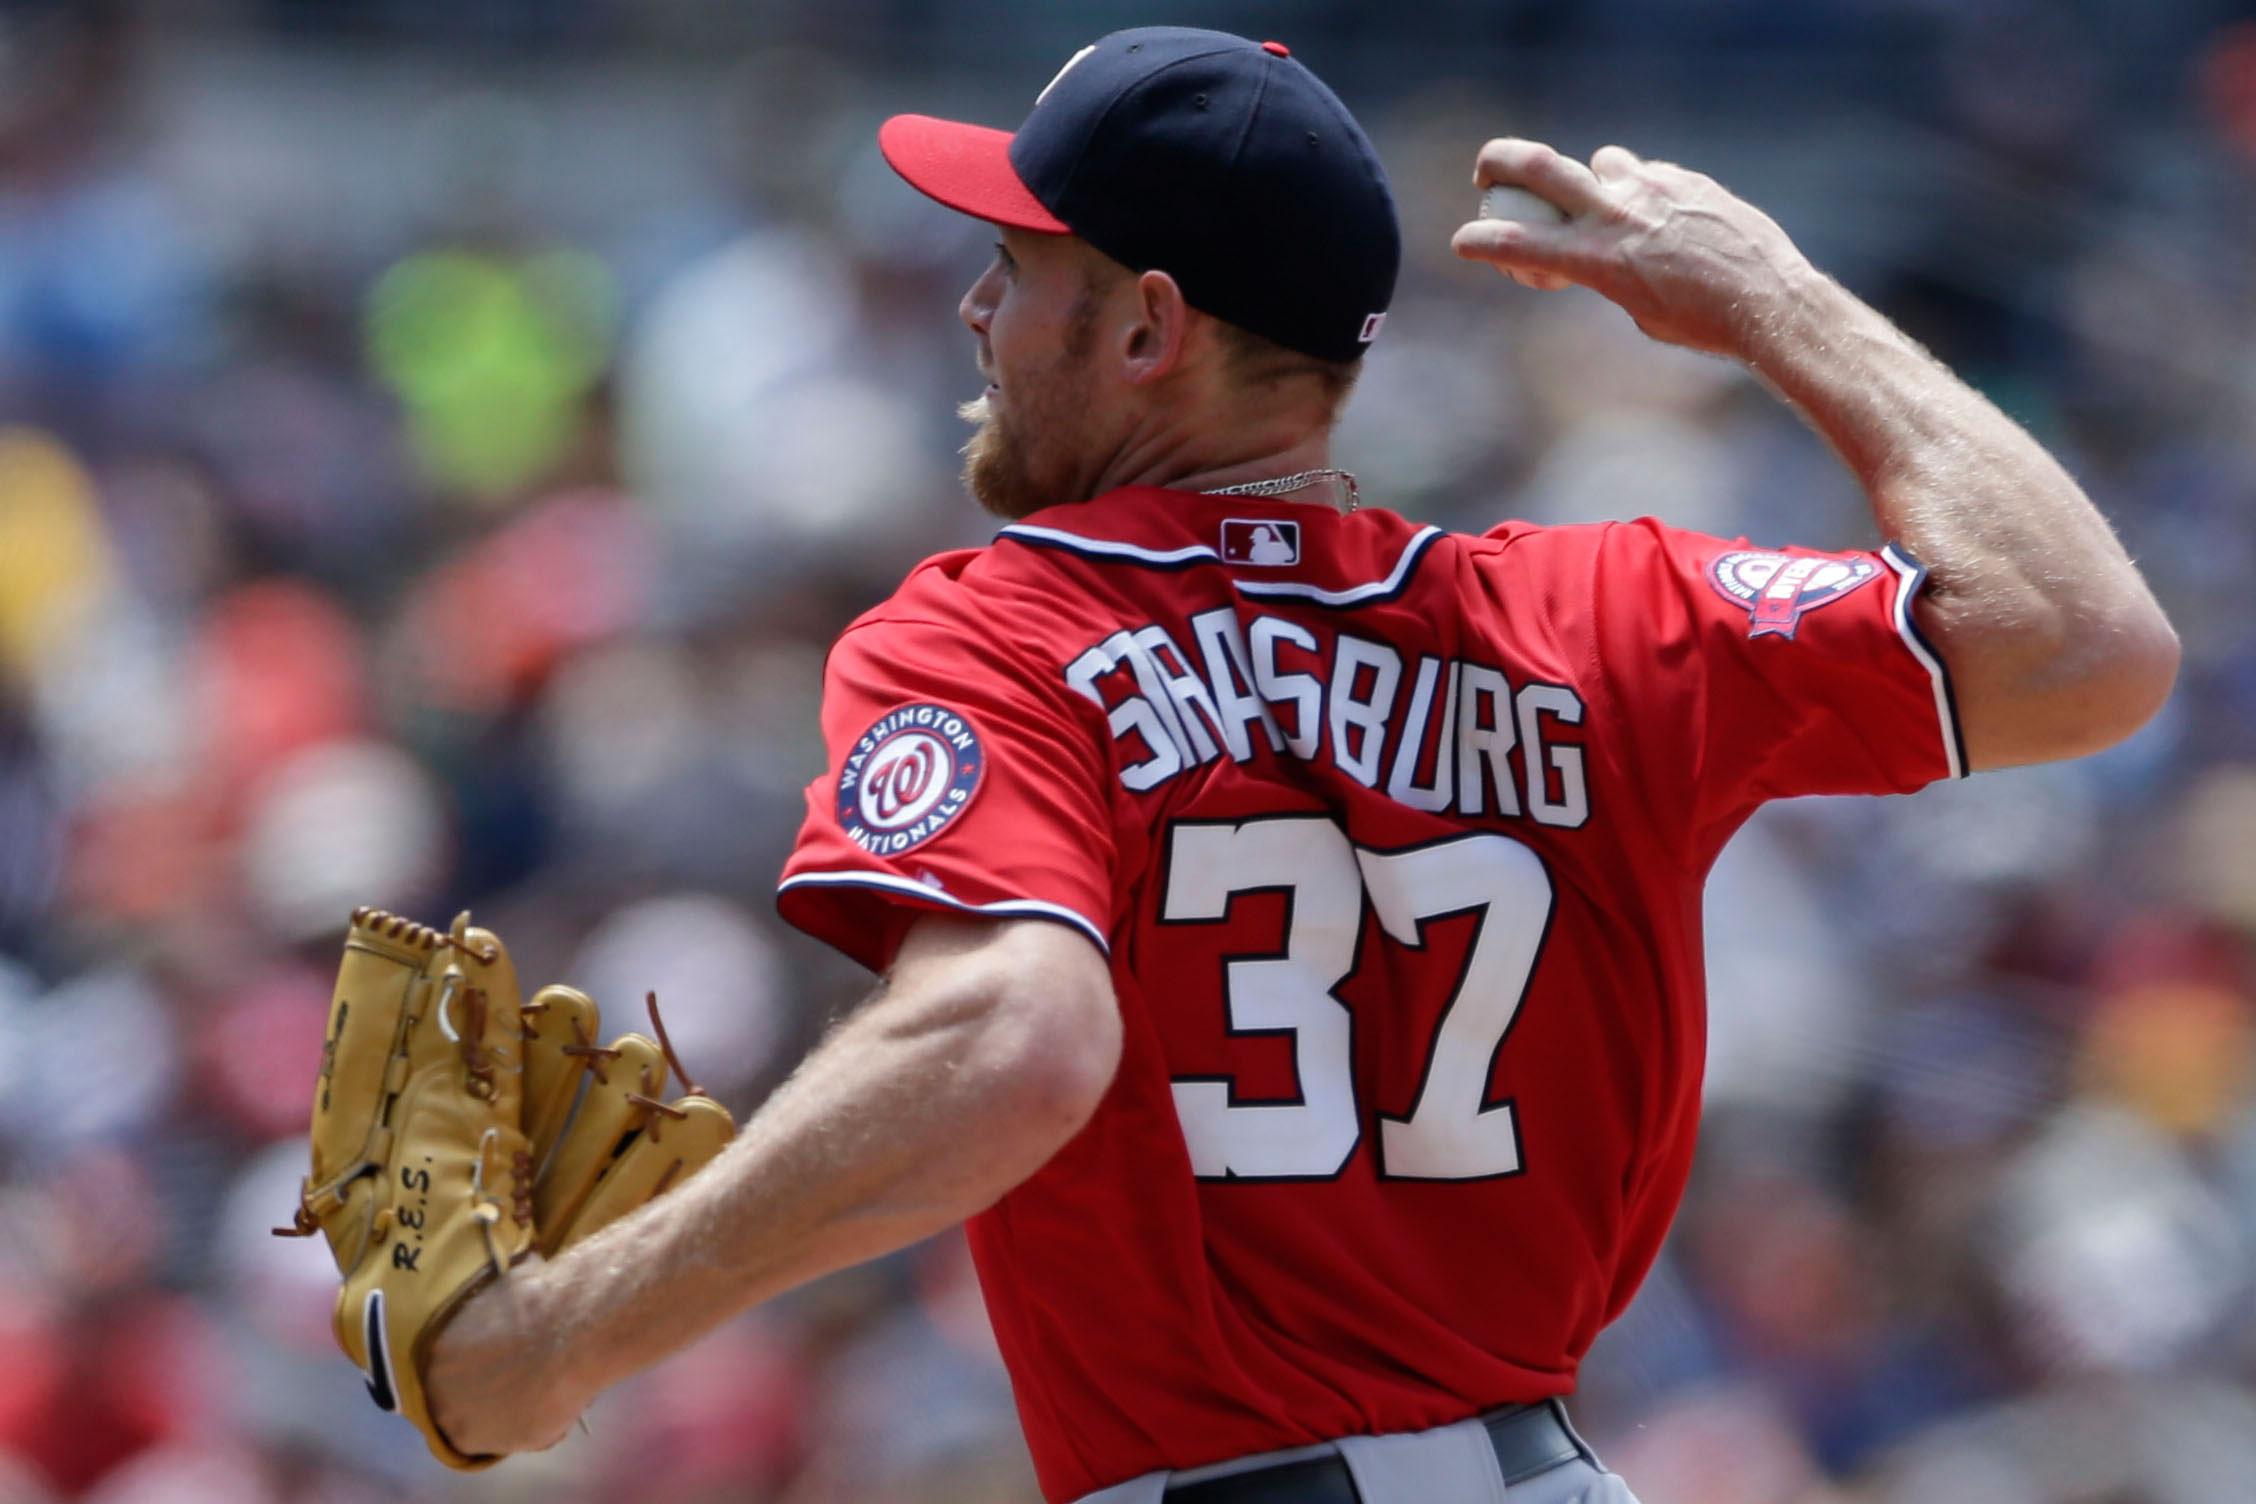 Seven semi-serious suggestions for Stephen Strasburg